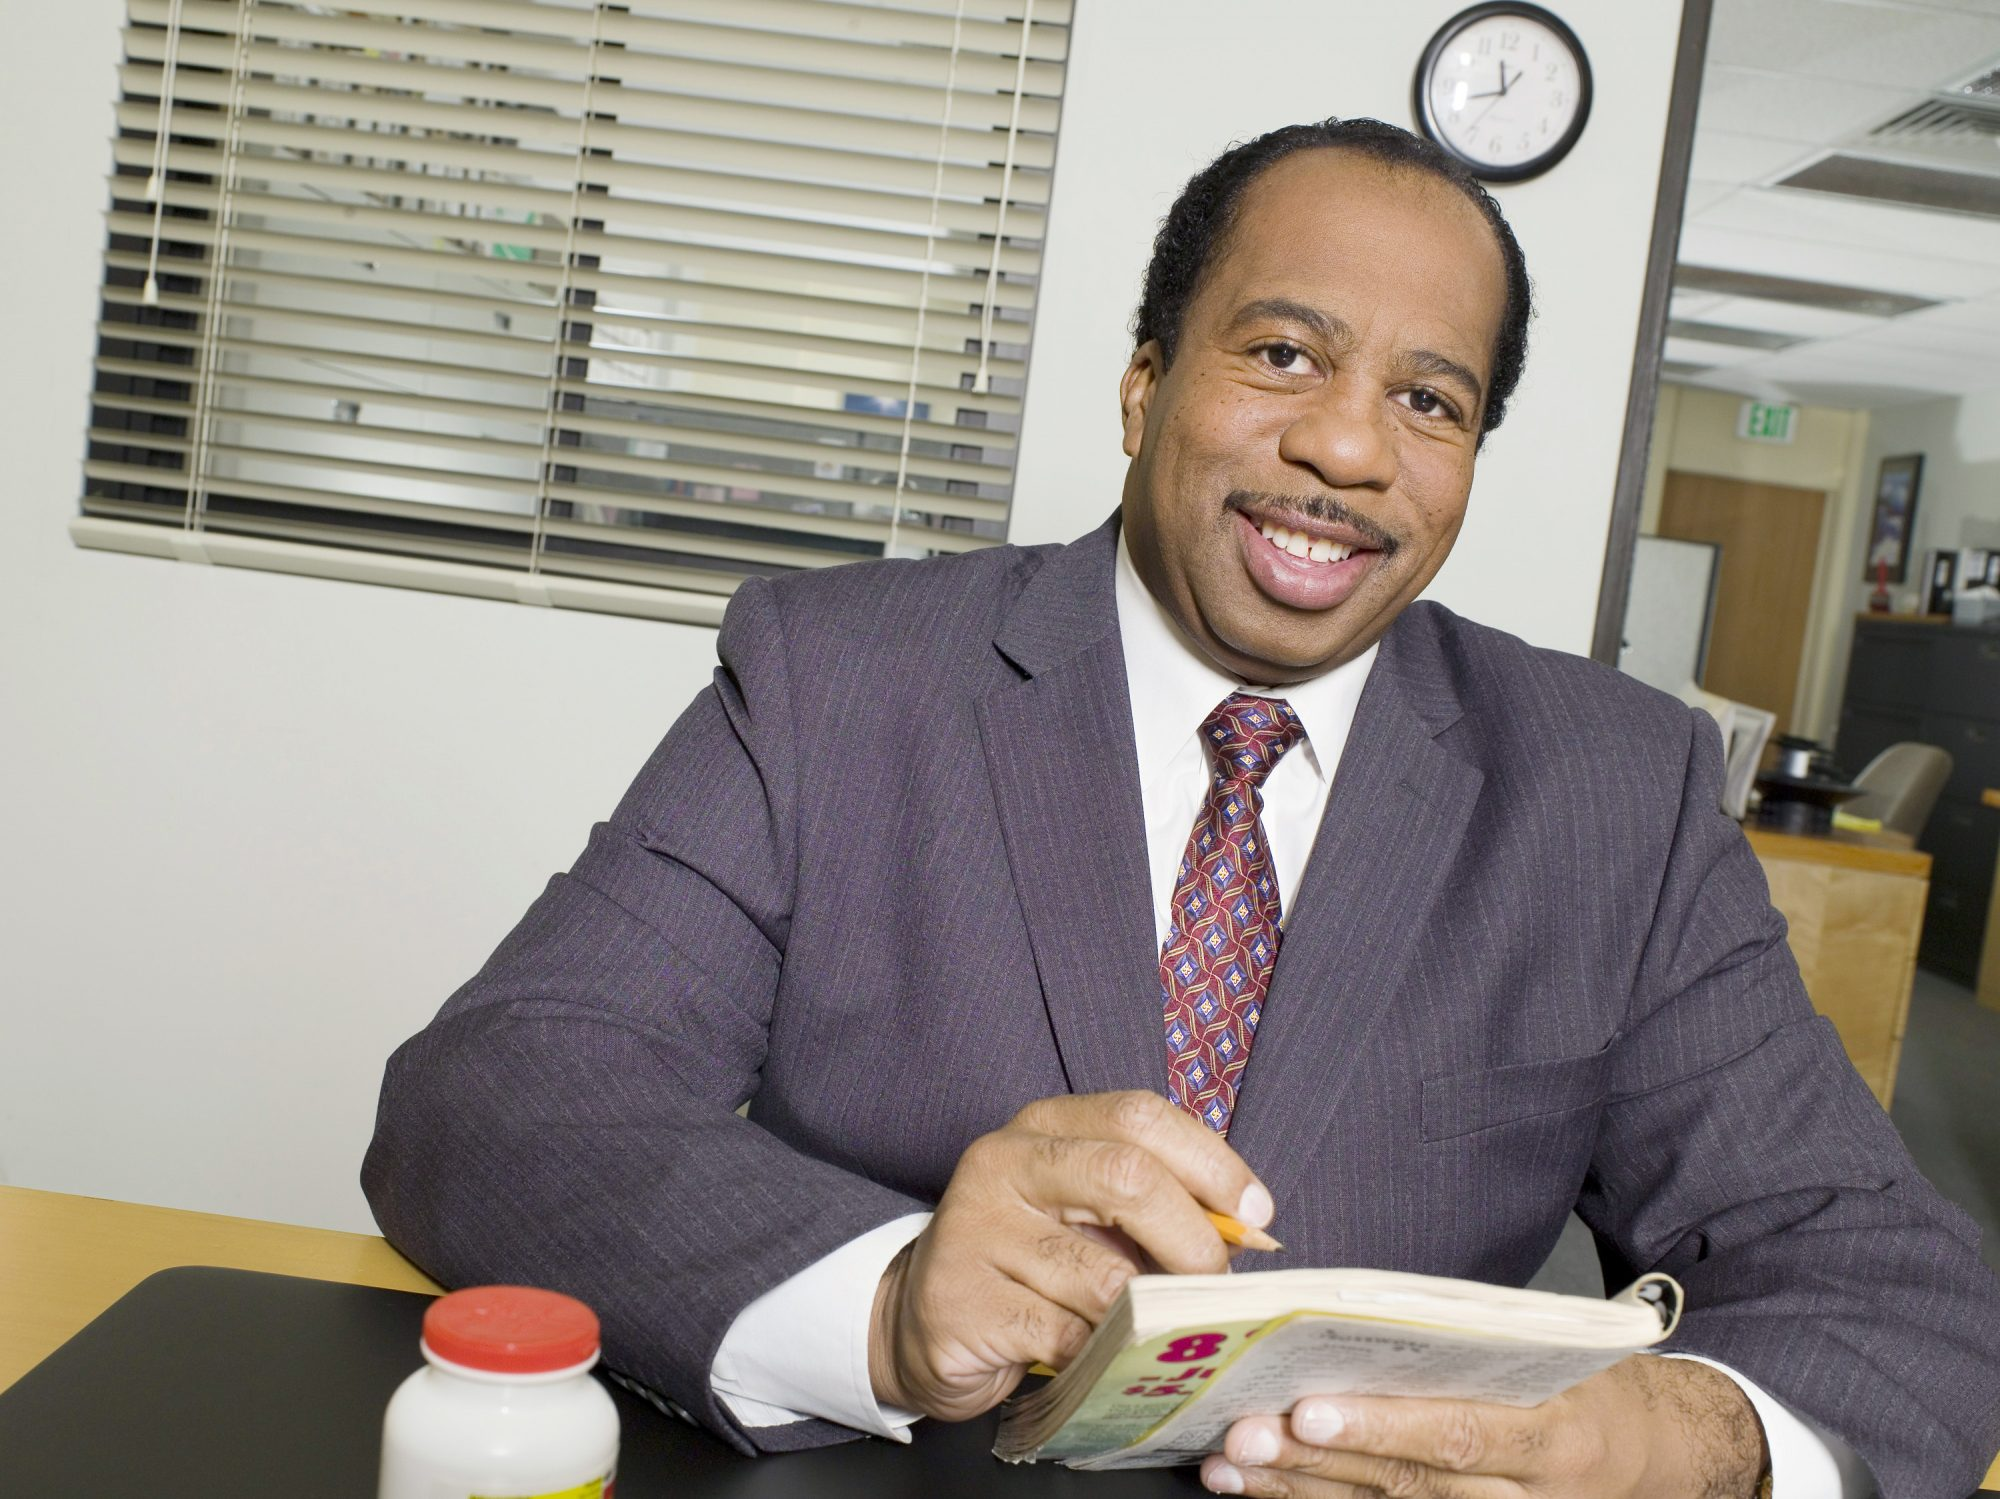 leslie david baker as stanley on the office